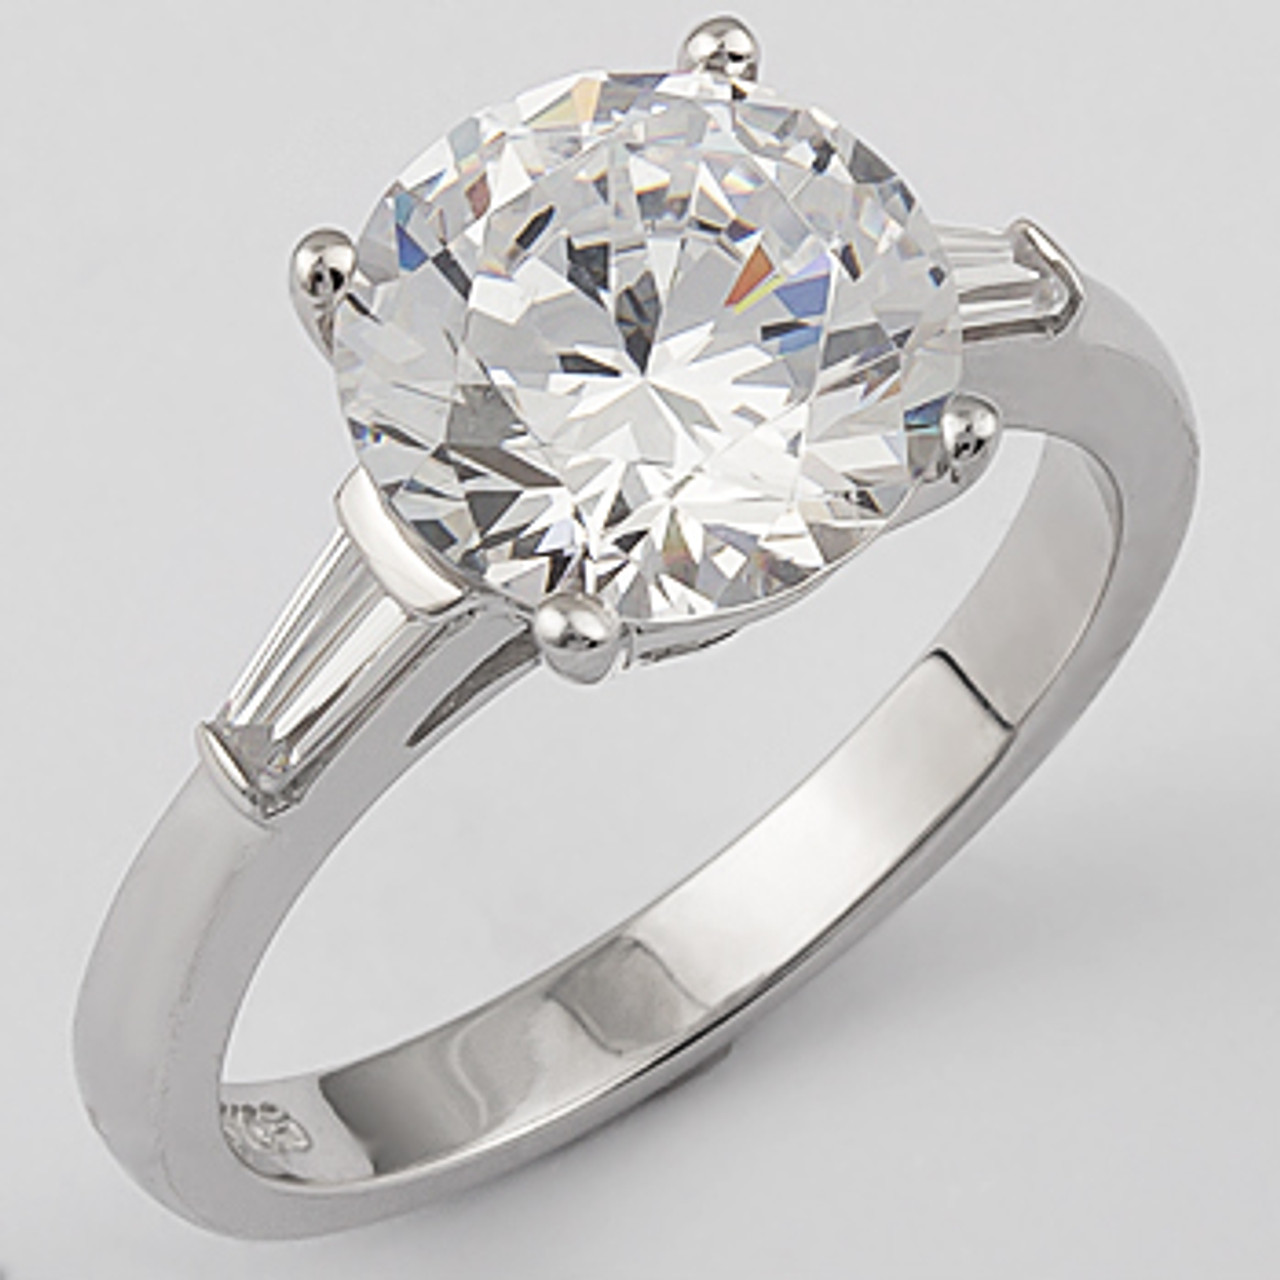 round cubic zirconia engagement solitaire baguette ring - Cubic Zirconia Wedding Rings